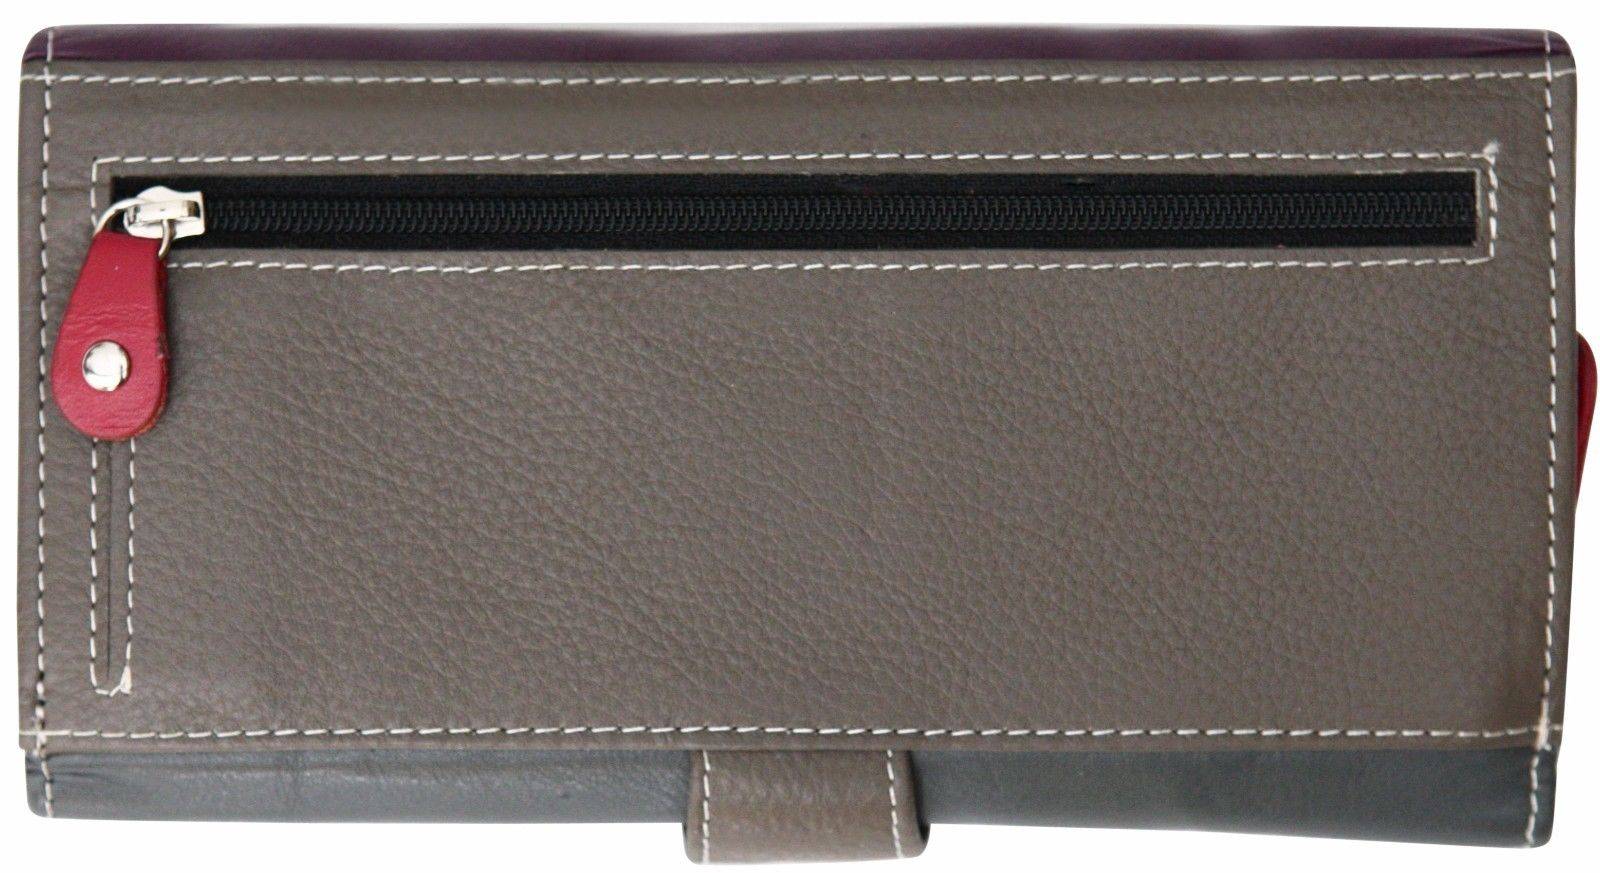 Felda-RFID-Ladies-Leather-Soft-Wallet-Large-Capacity-Purse-Womens-Multi-24-Card miniatuur 52